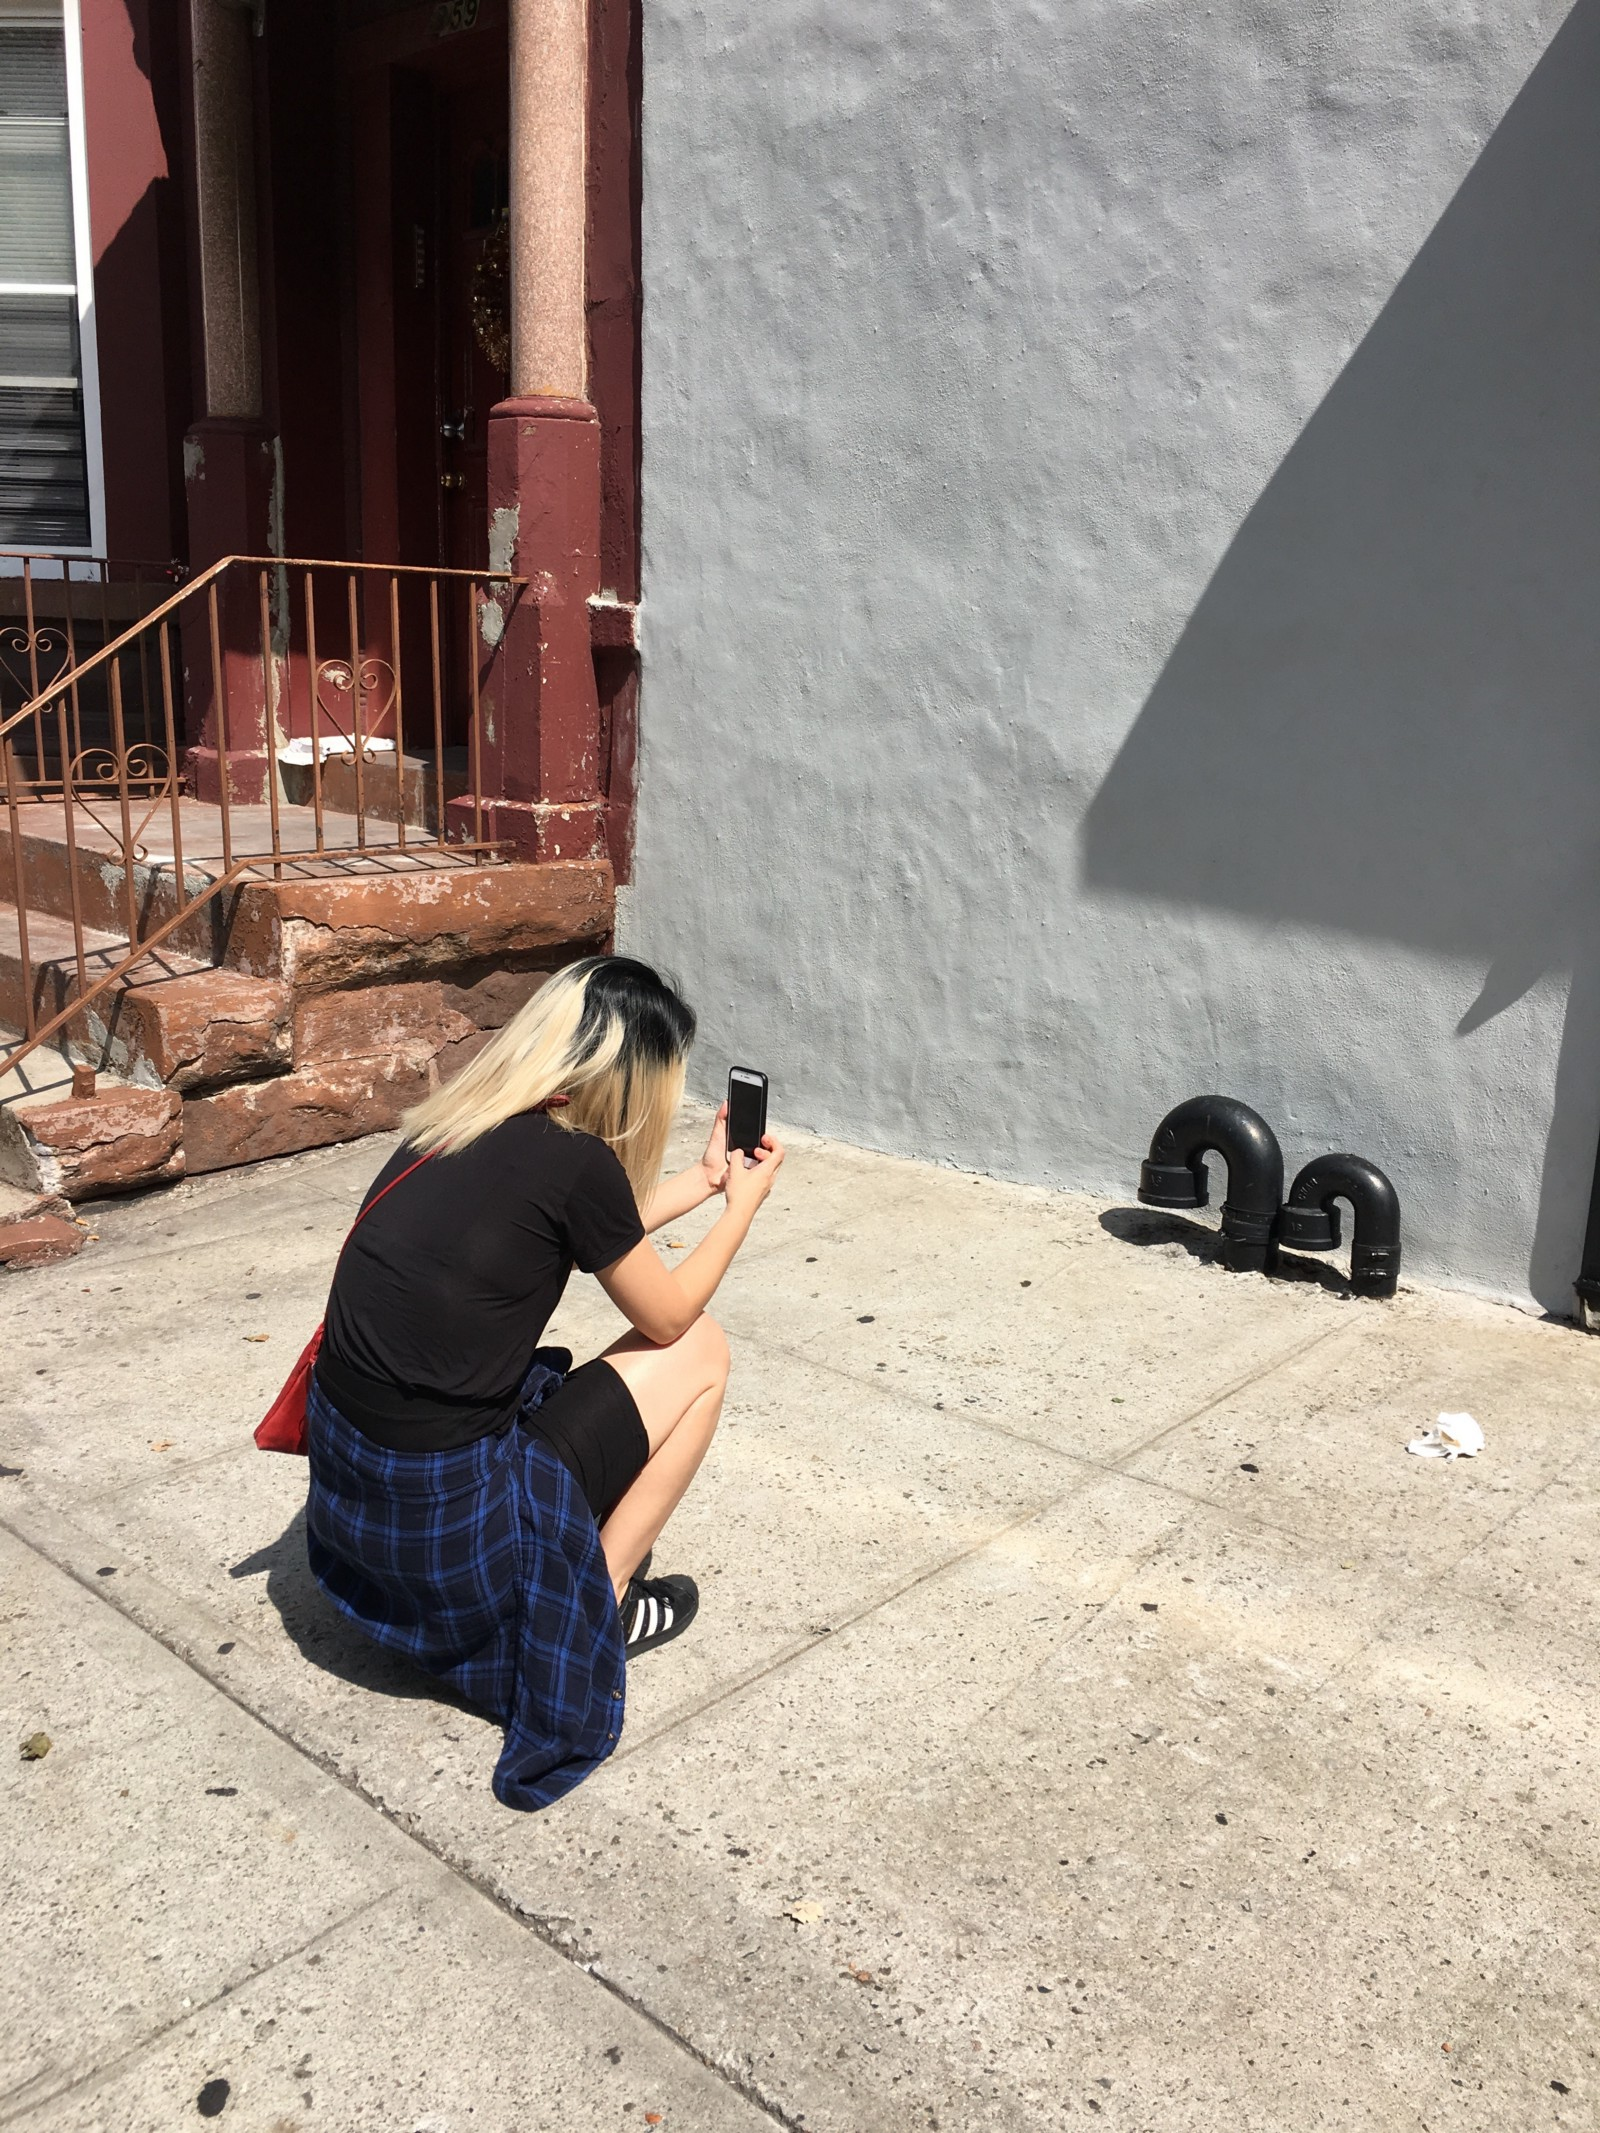 Taking a photo of Hannah taking a photo.